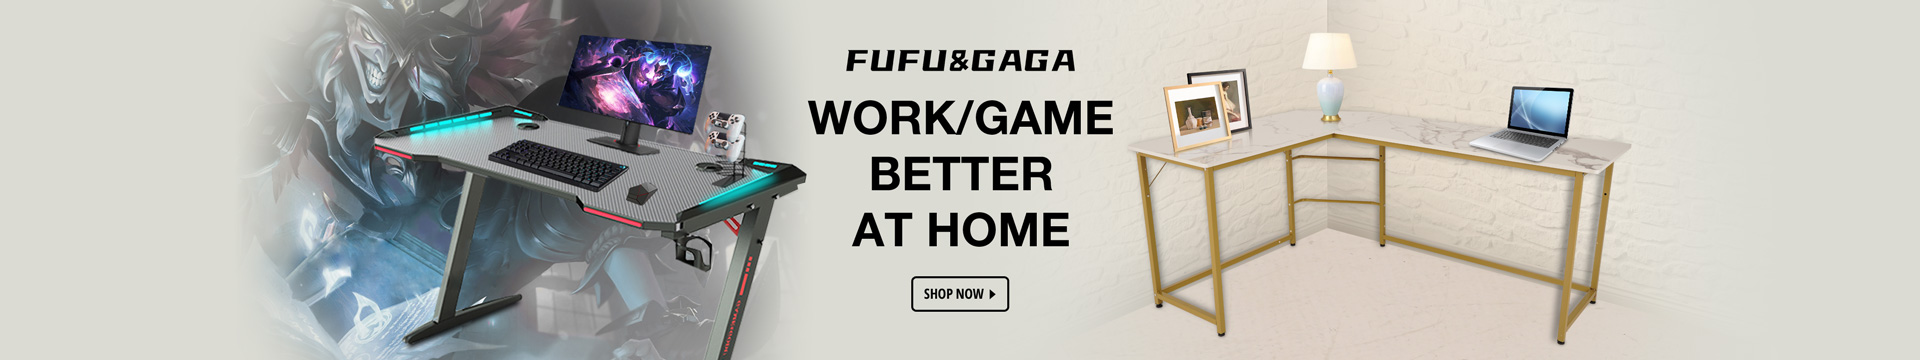 Work/Game better at home